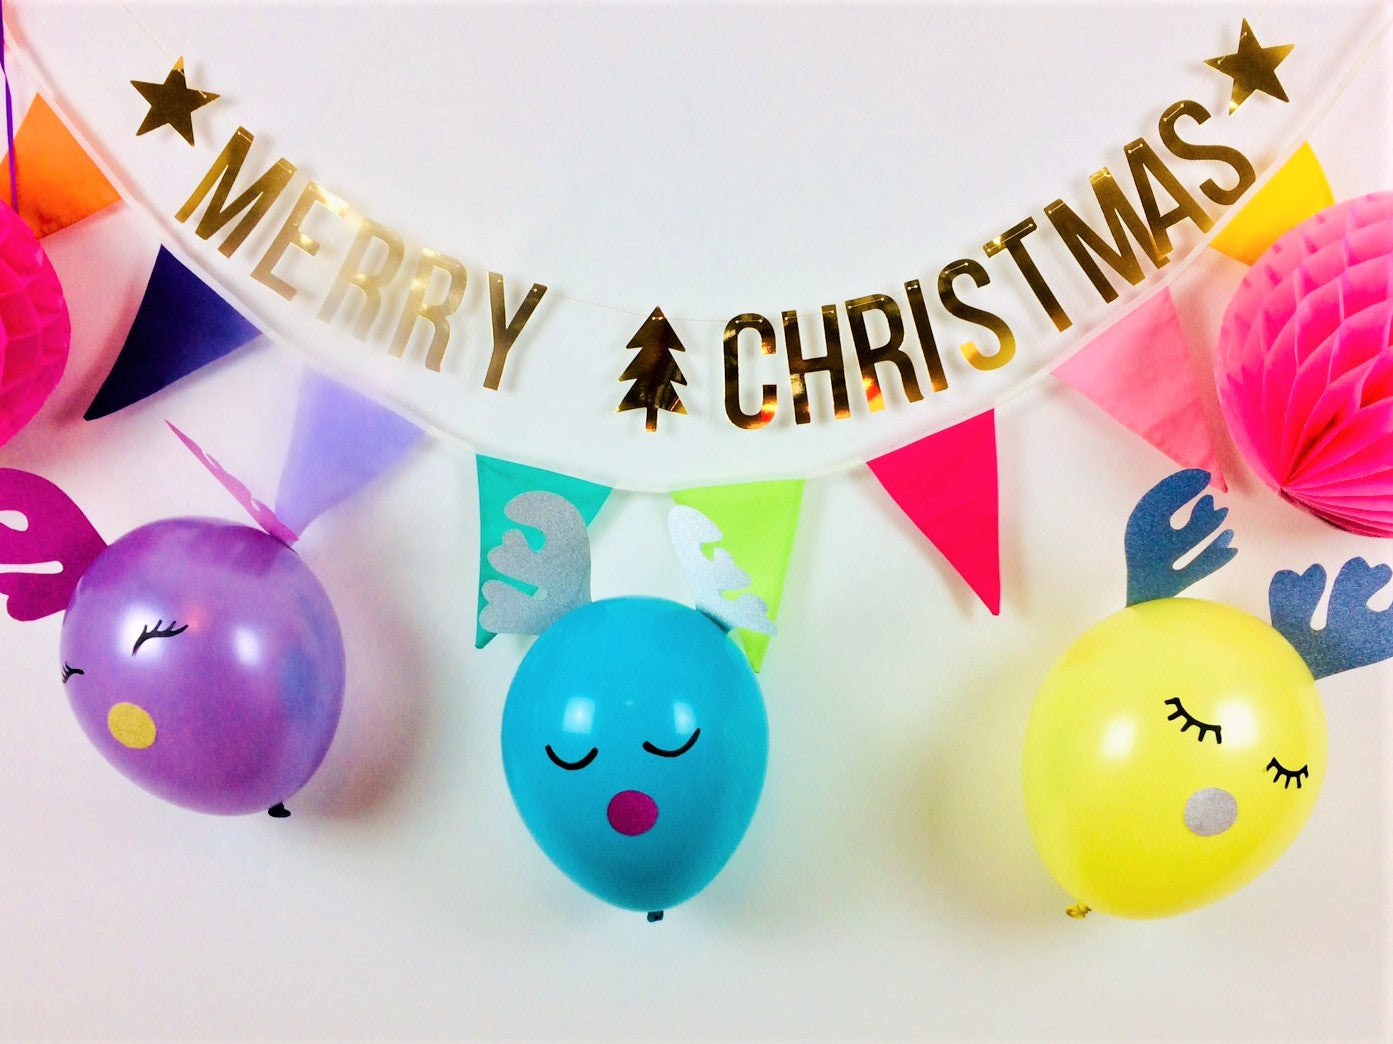 Fun Festive Reindeer Balloon Tutorial Blog